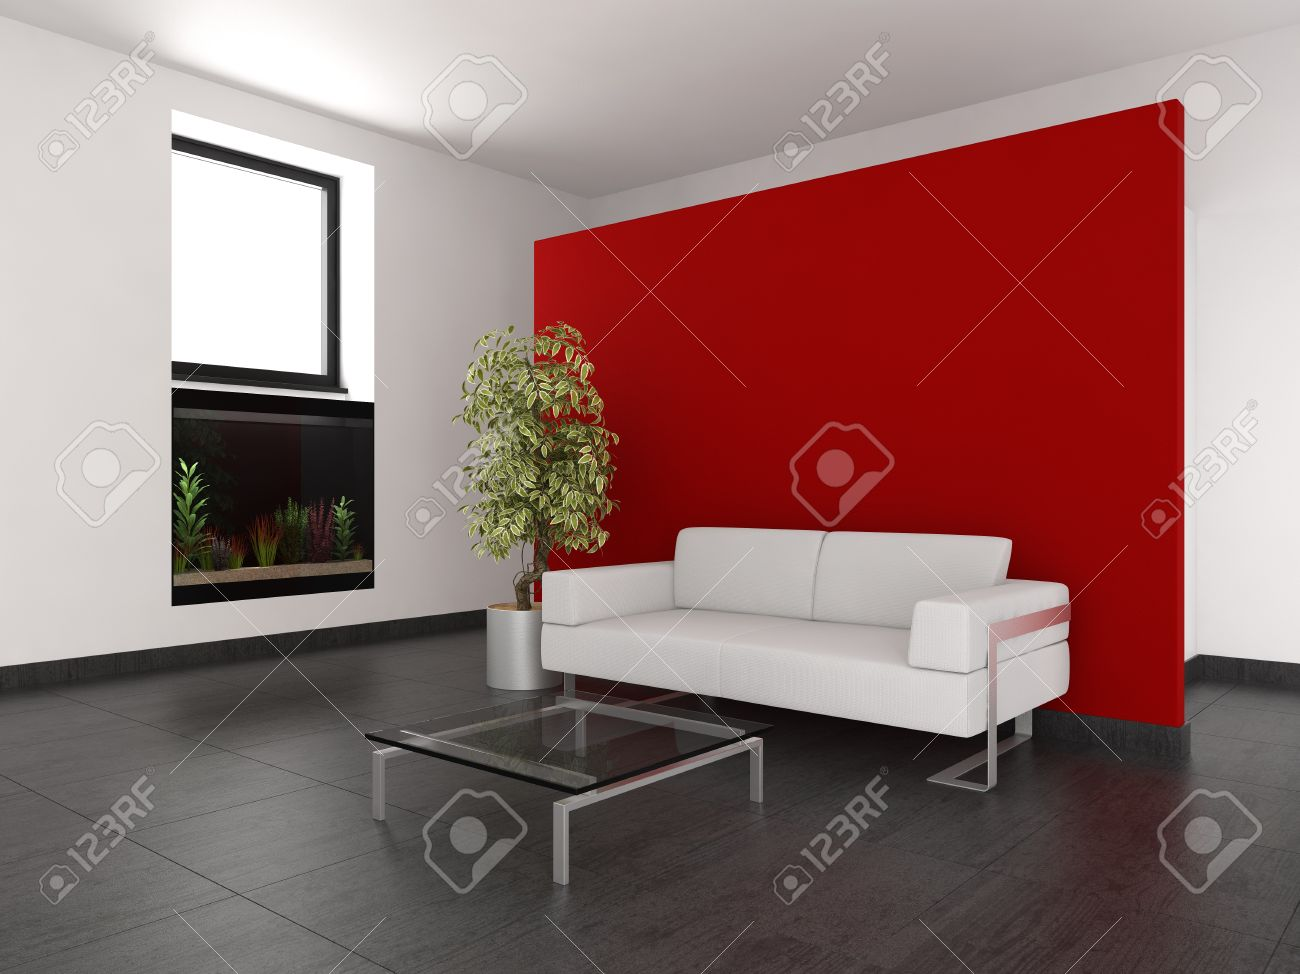 modern living room with red wall and aquarium Stock Photo - 9592393